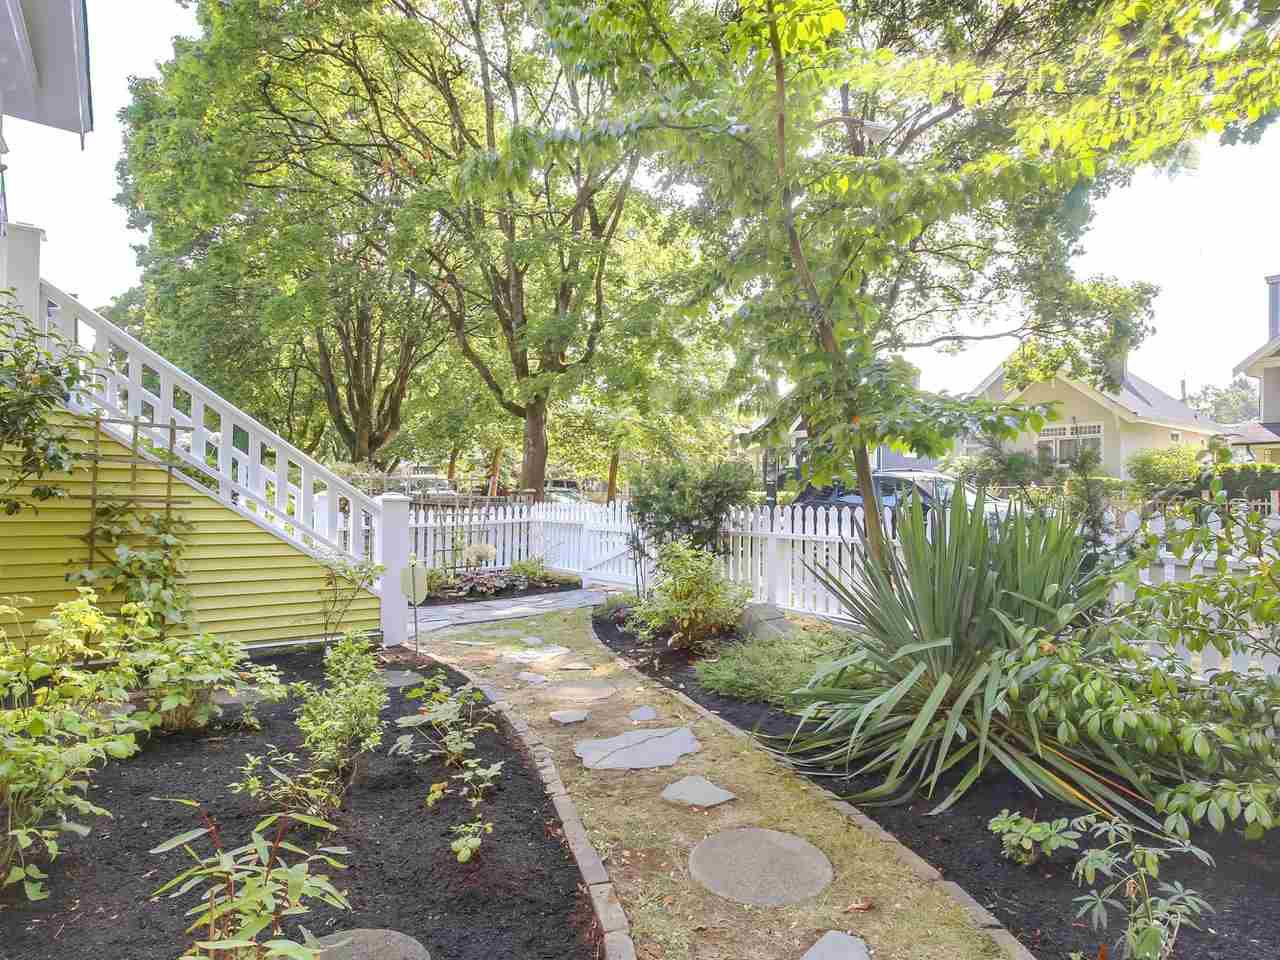 Photo 2: Photos: 1761 E 13TH AVENUE in Vancouver: Grandview VE House for sale (Vancouver East)  : MLS®# R2202018